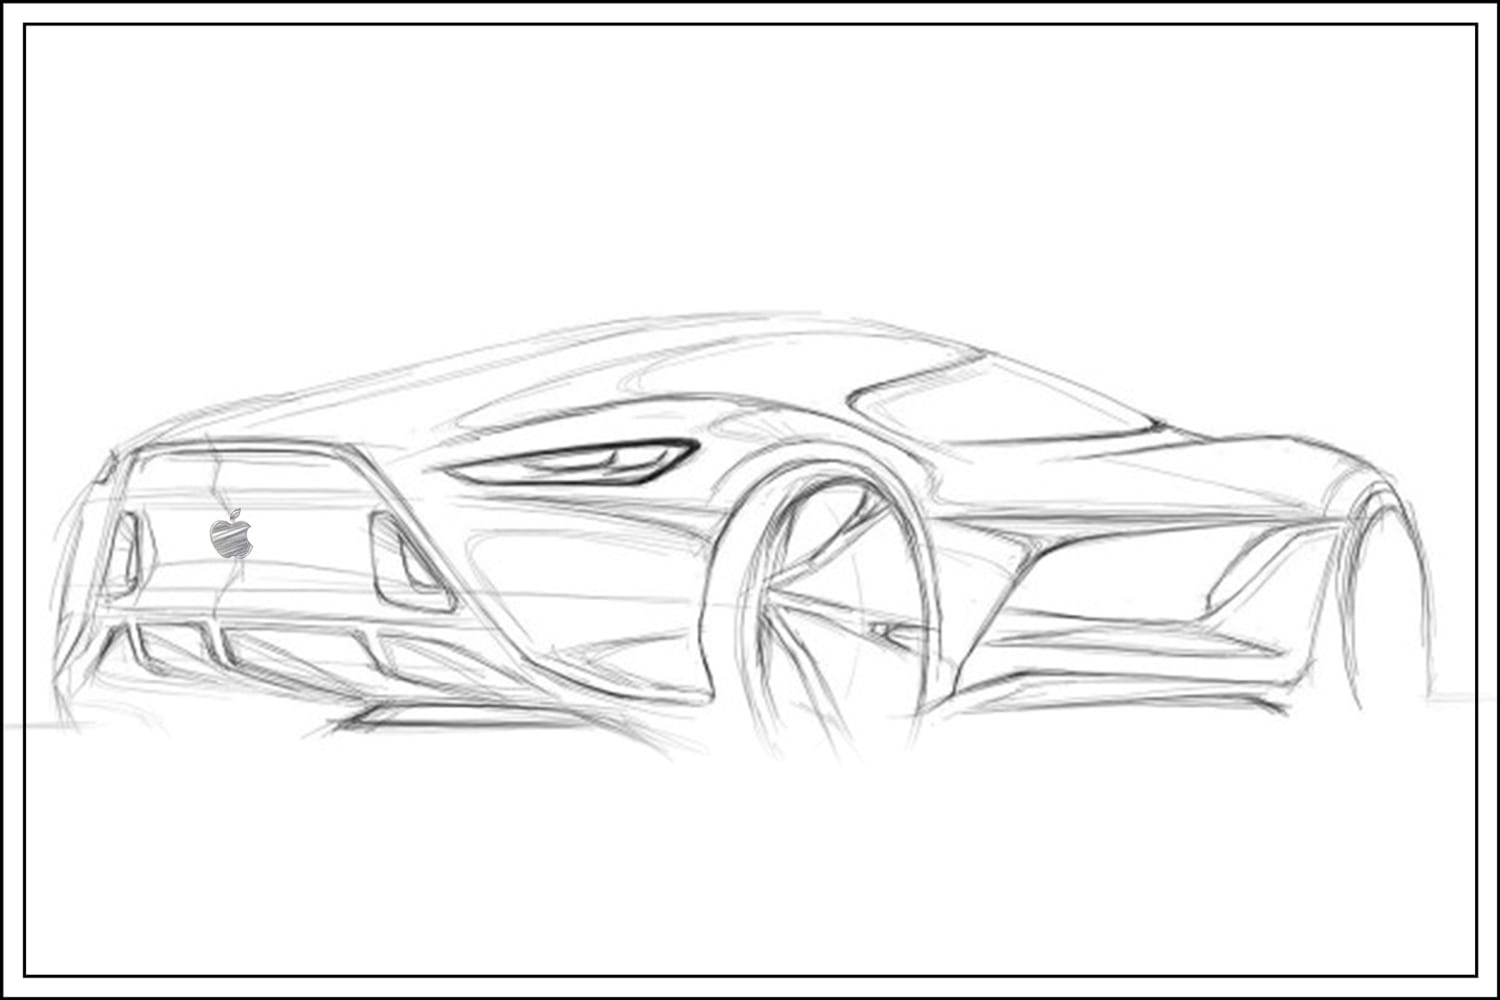 recently-published-patent-reveals-rechargeable-apple-car-design-20201027-1